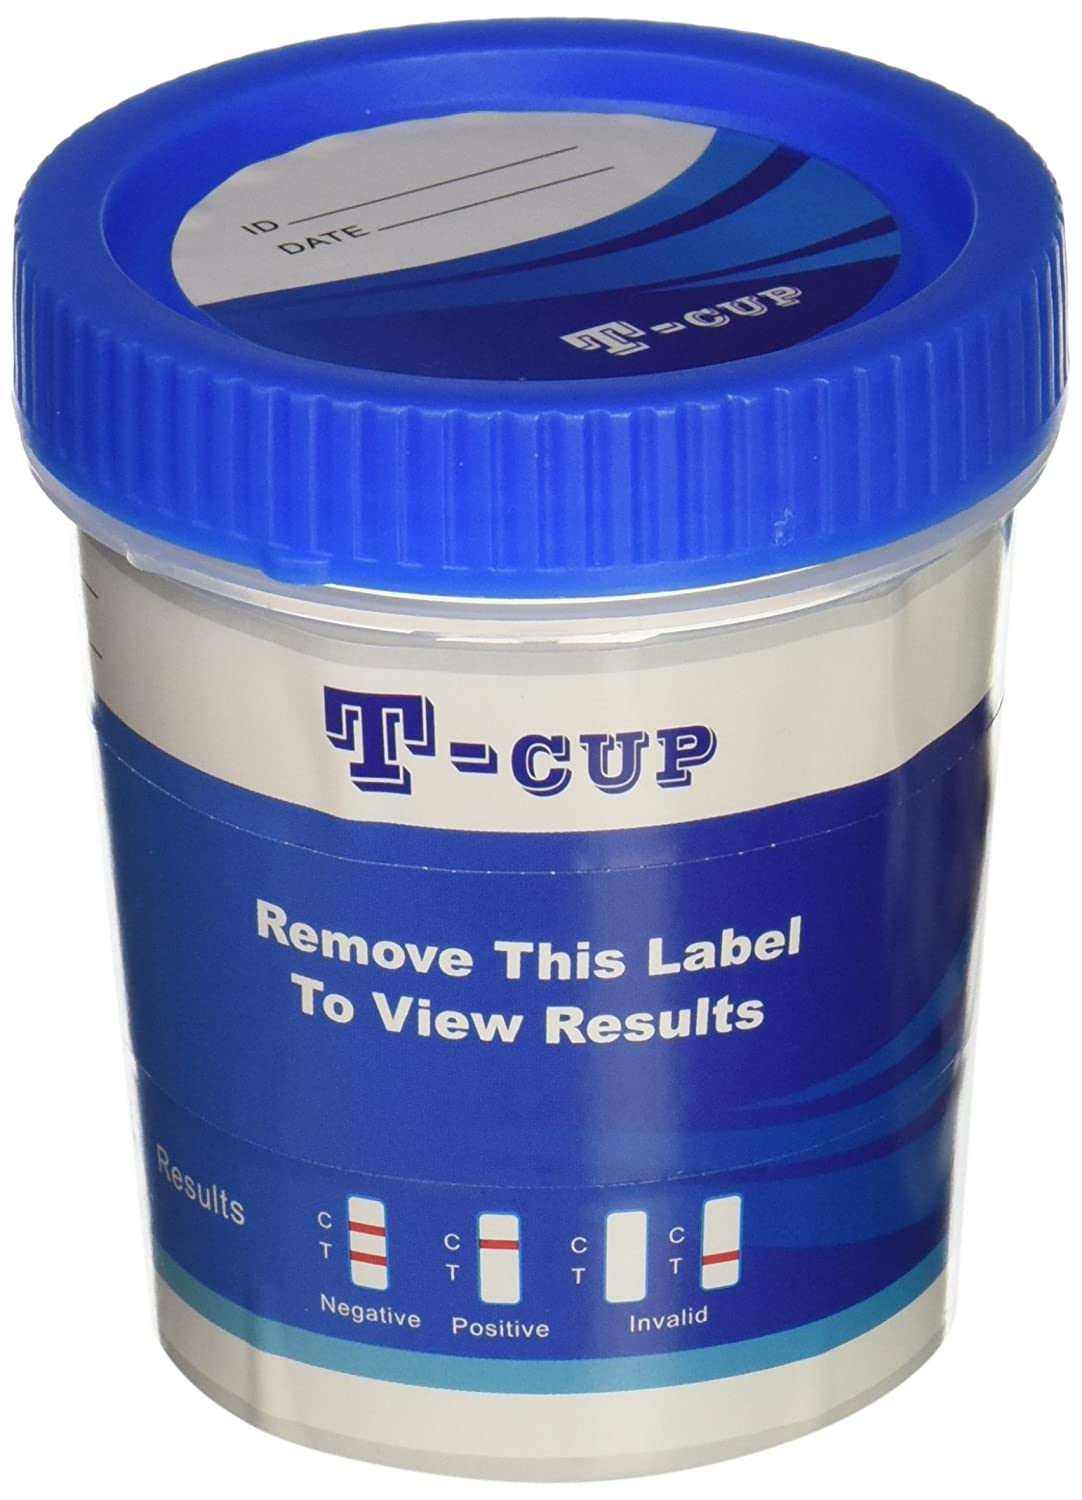 14-Panel Drug Testing Kit Test For 14 Different Drugs Instantly